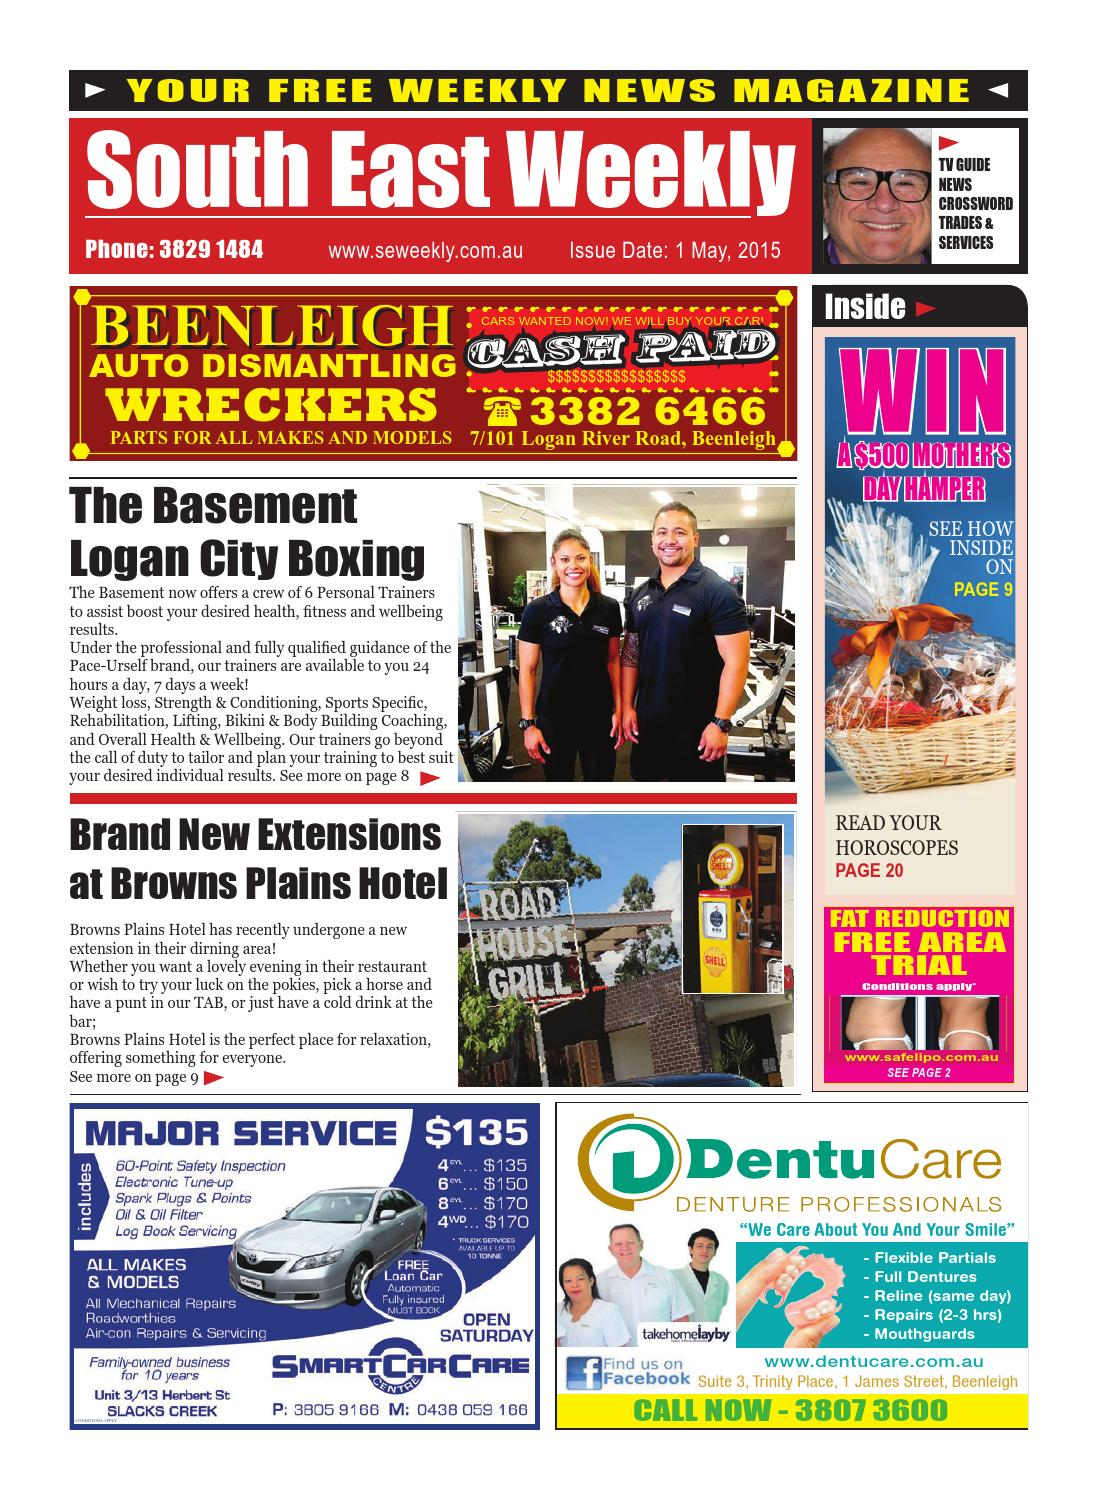 South east weekly may 1 2015 by south east weekly magazine issuu negle Images